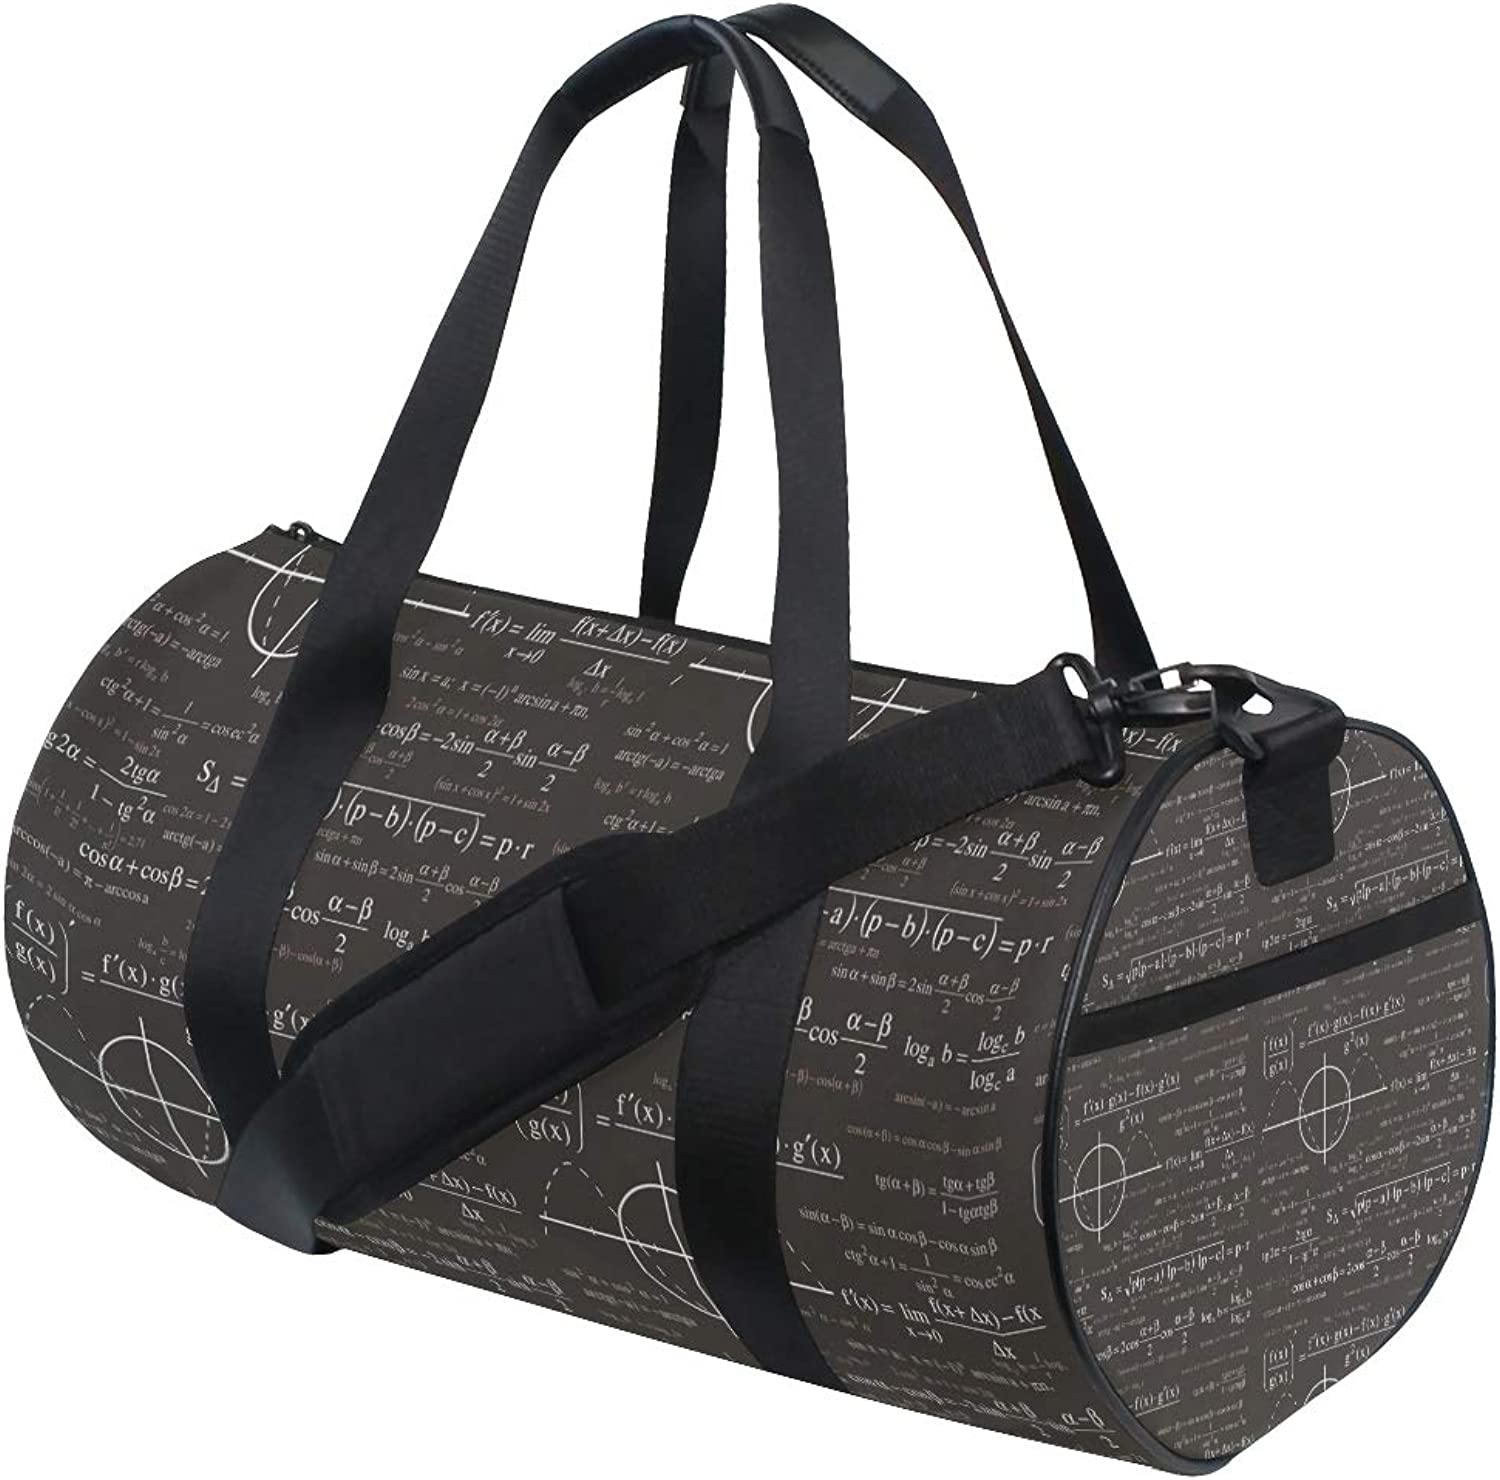 Russe Gym Bag Math Equations Energy with shoes Compartment Waterproof Travel Duffel Bag for Women and Men